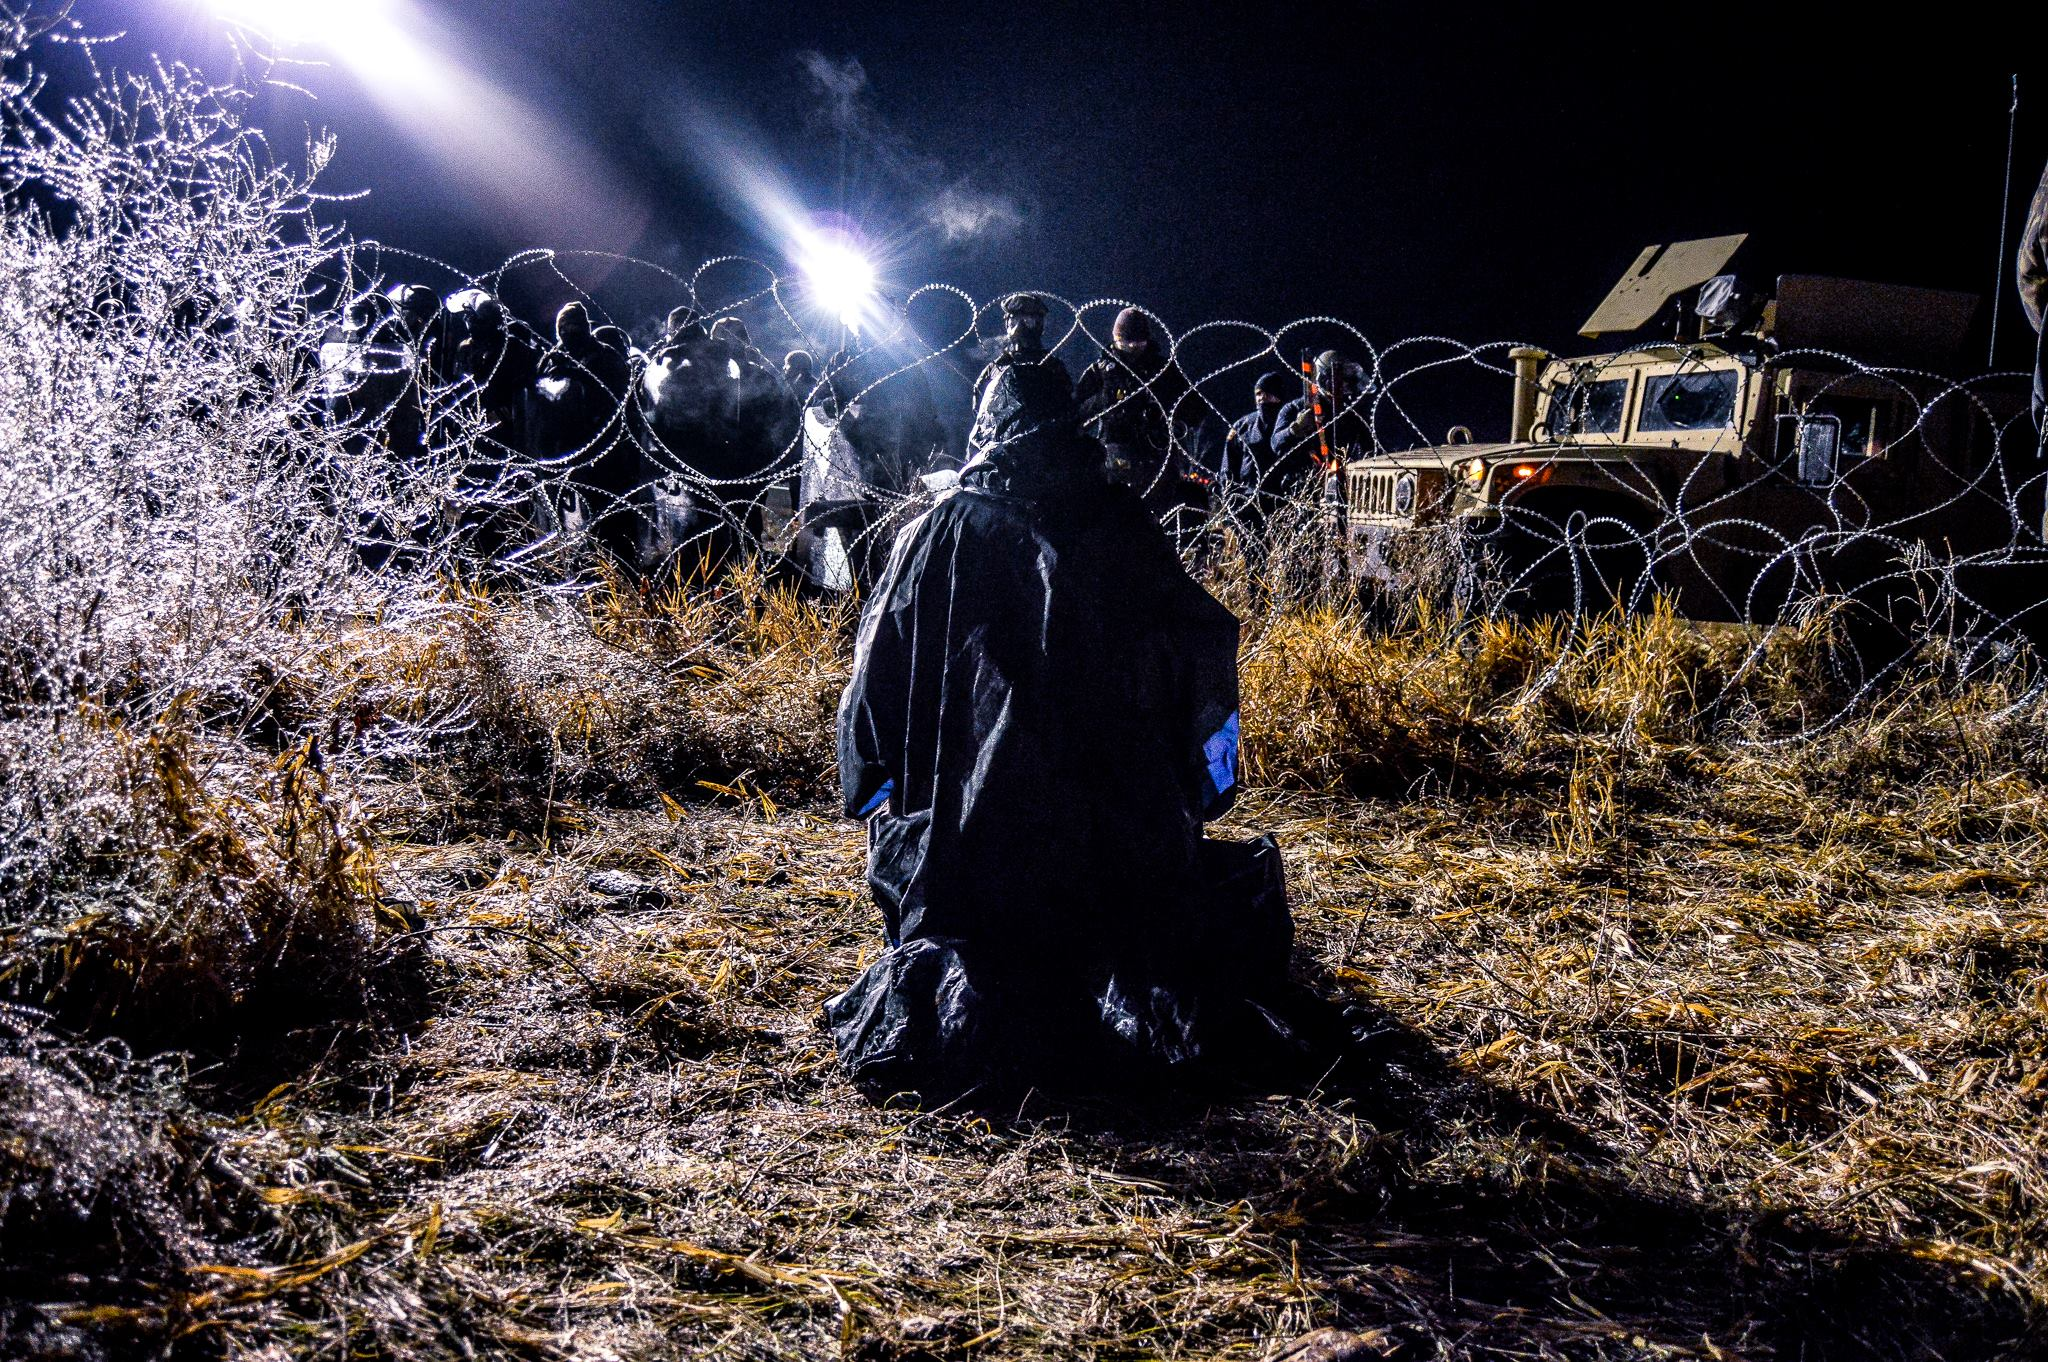 Ruth Hopkins: Americans left with $15M bill for Dakota Access Pipeline's 'private army'